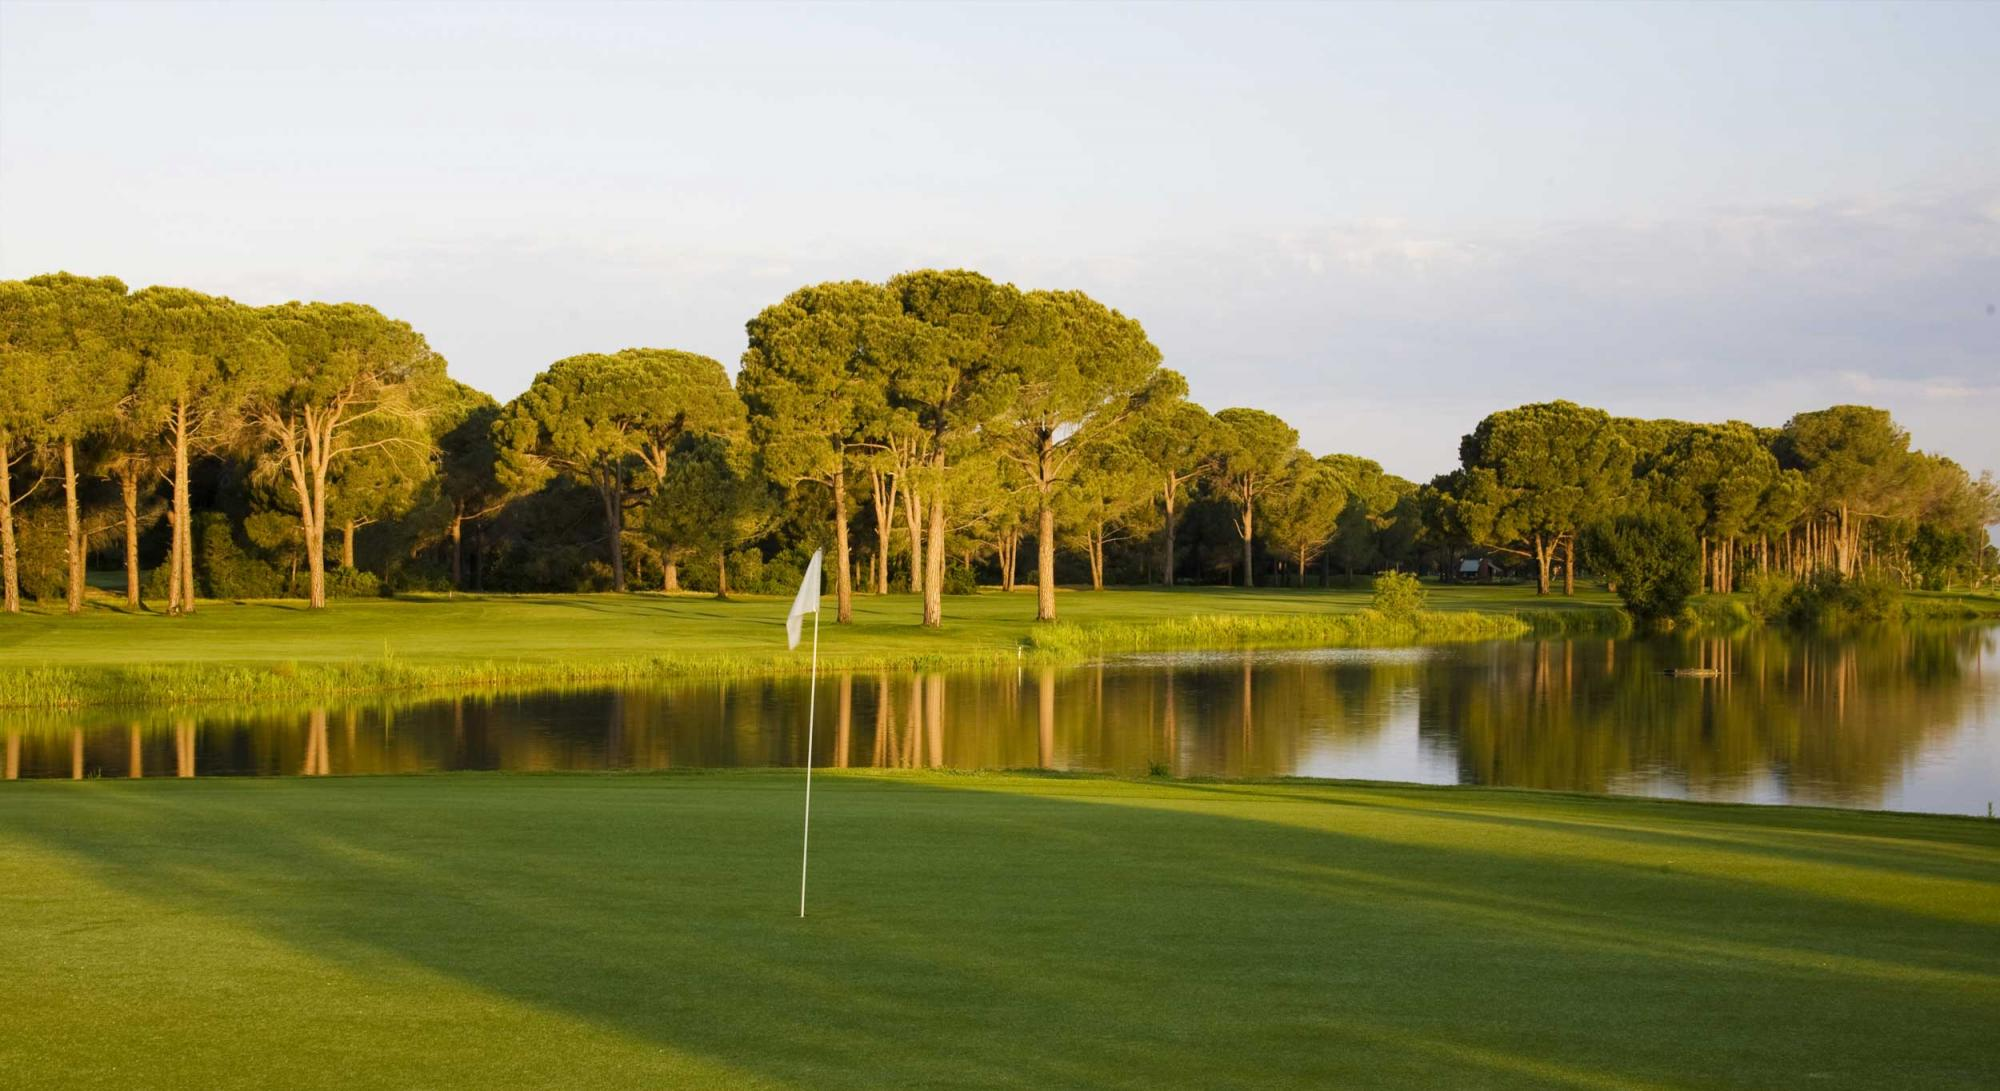 The Robinson Nobilis Golf Club's lovely golf course situated in brilliant Belek.